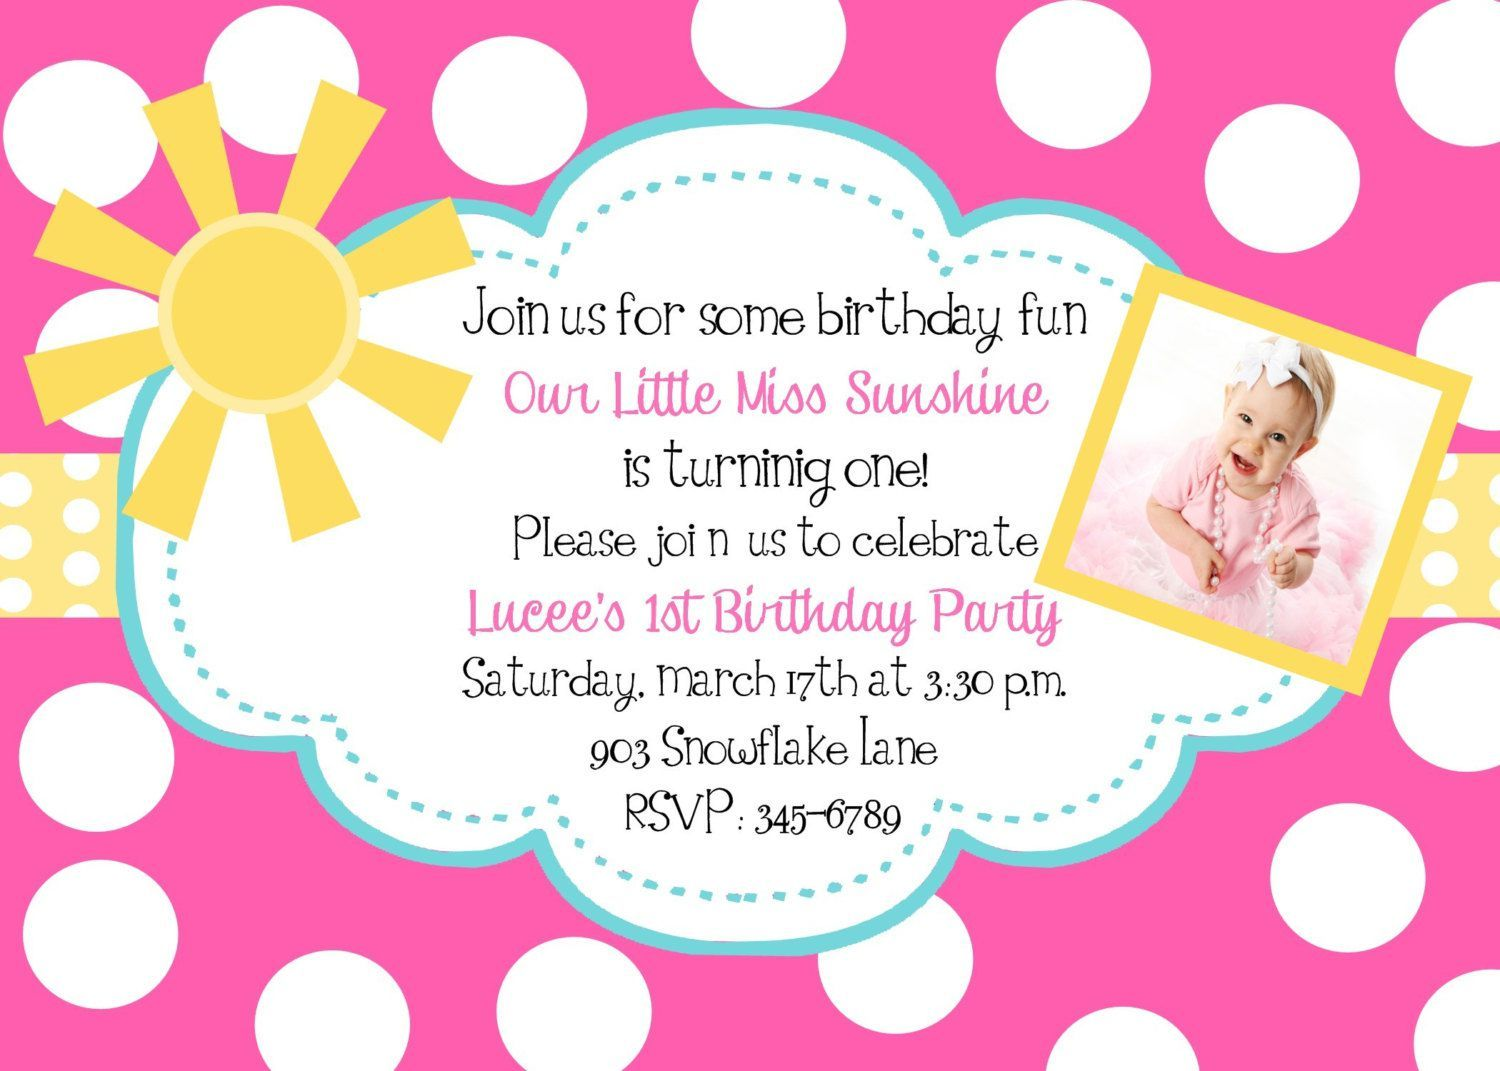 birthday invitation wording for 3 year old | birthday invitations ...